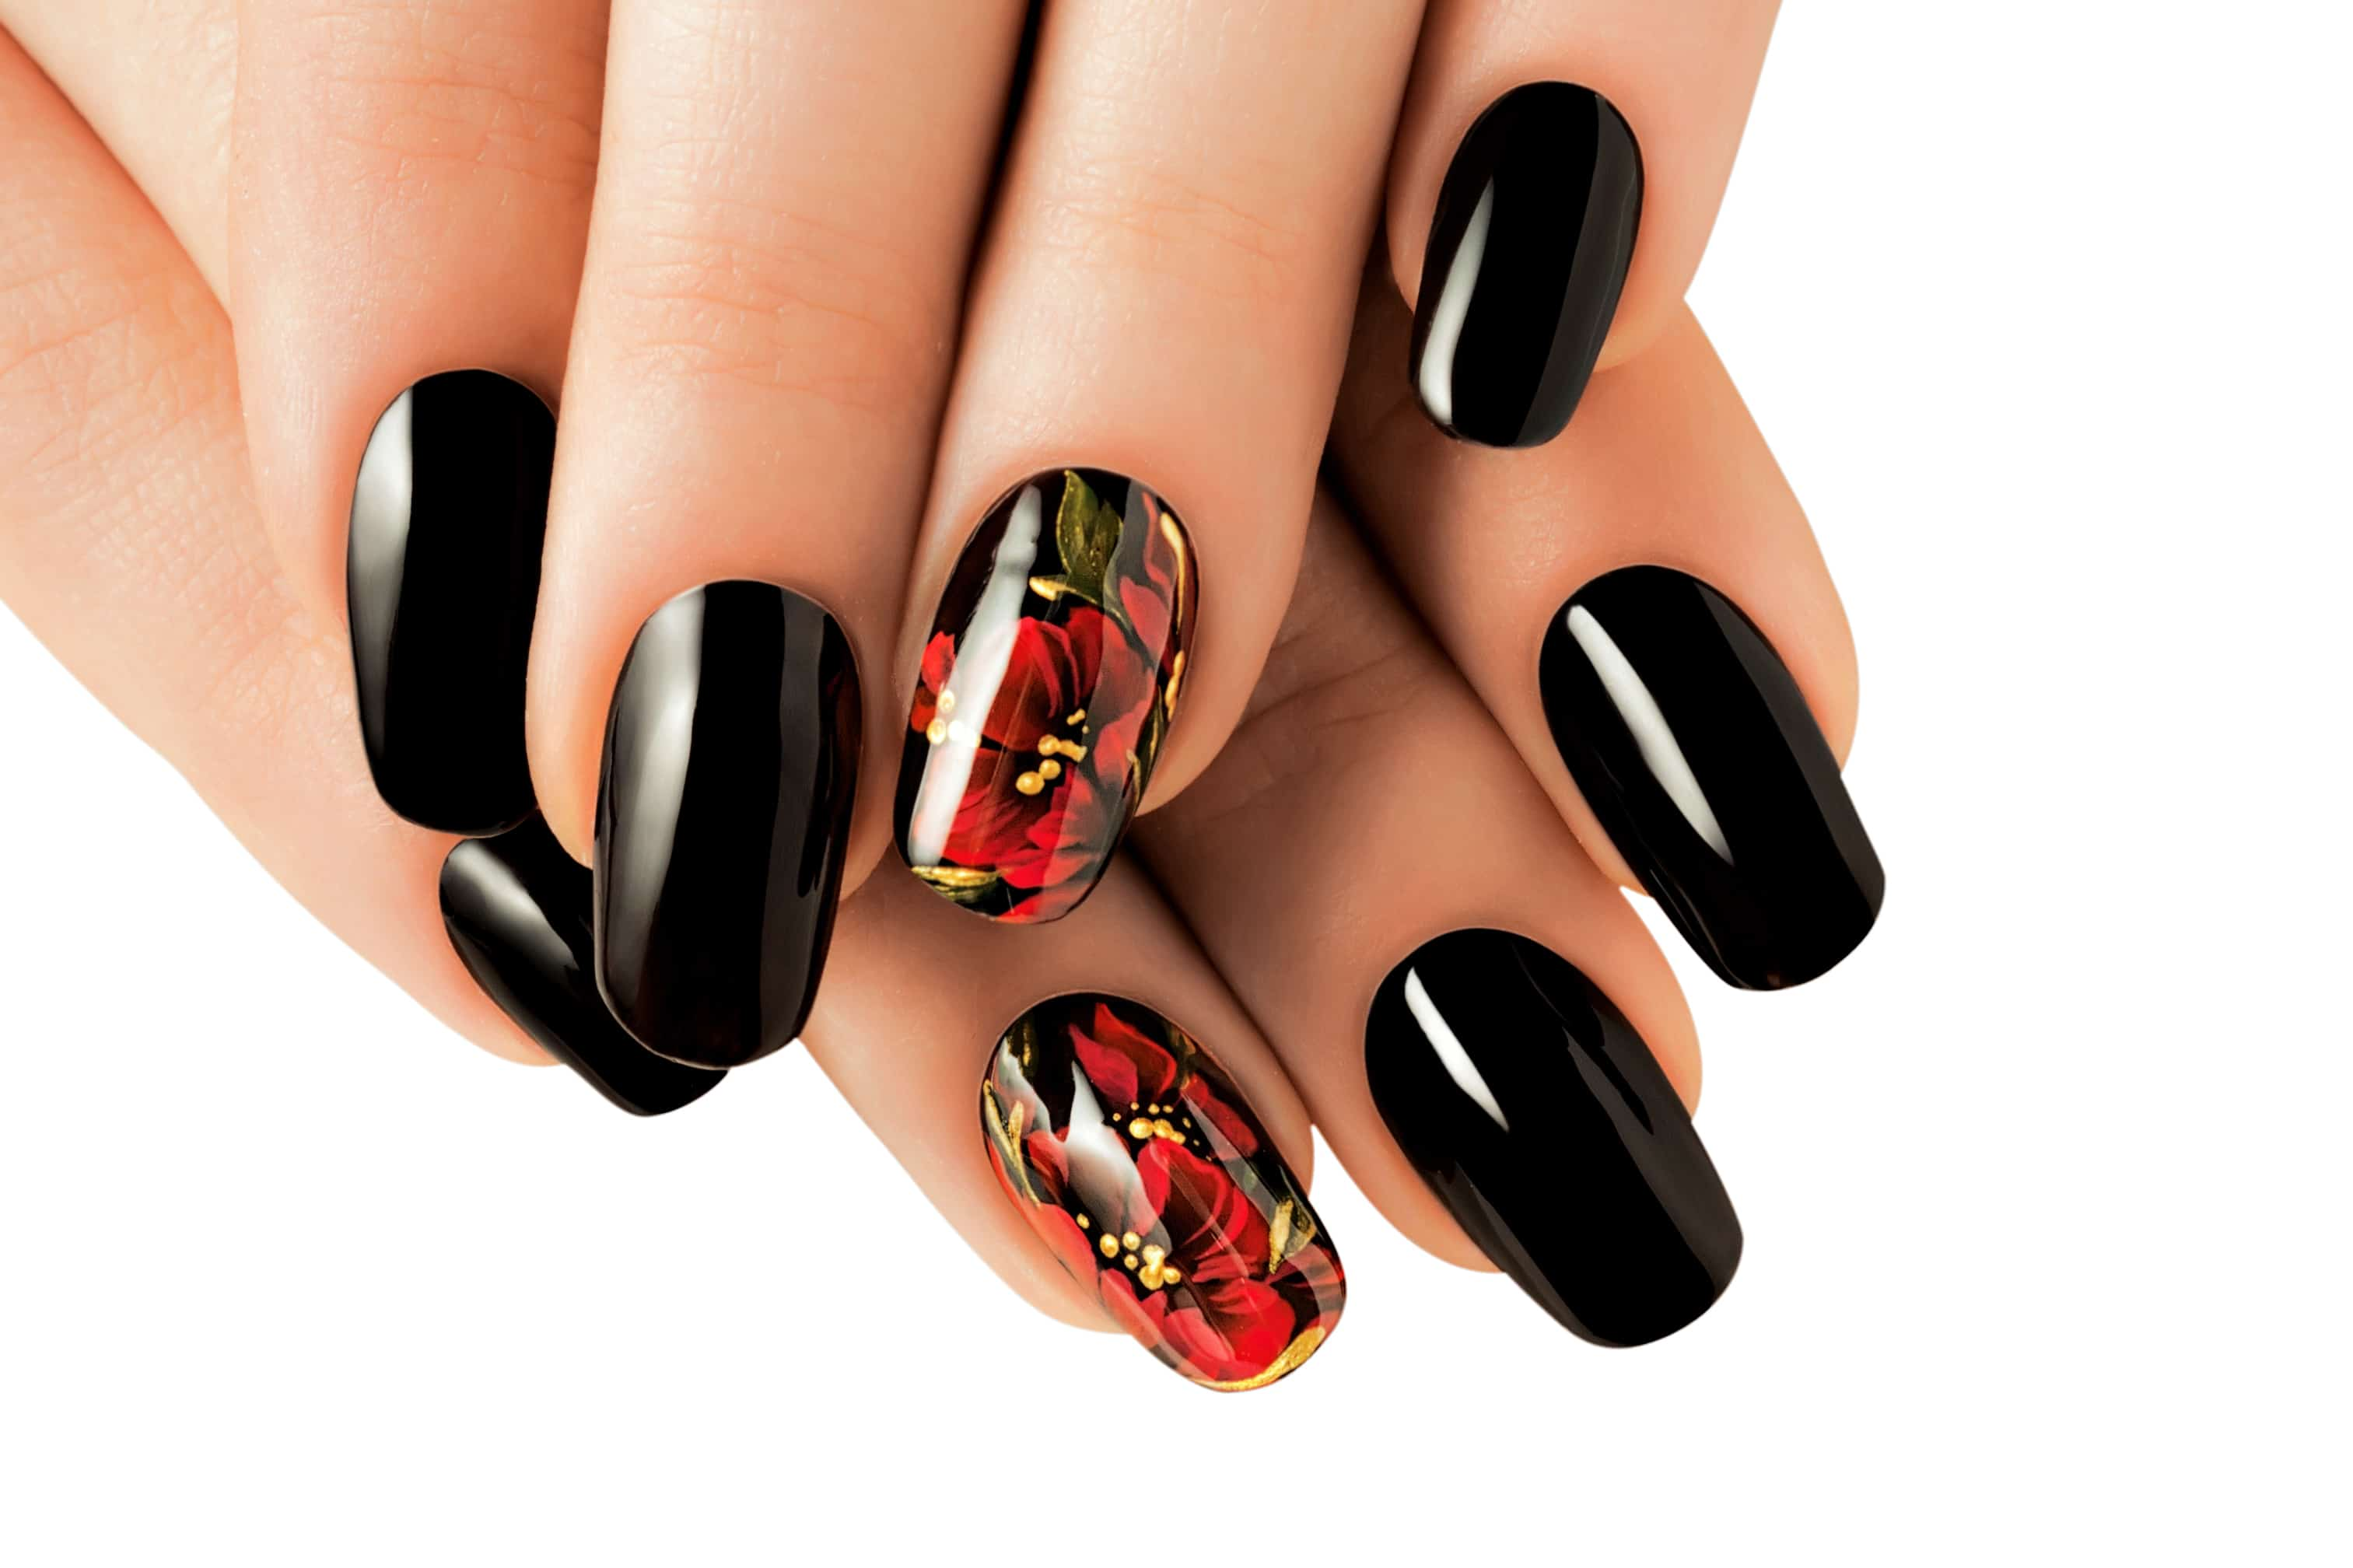 Short Black Oval Nails With Floral Prints